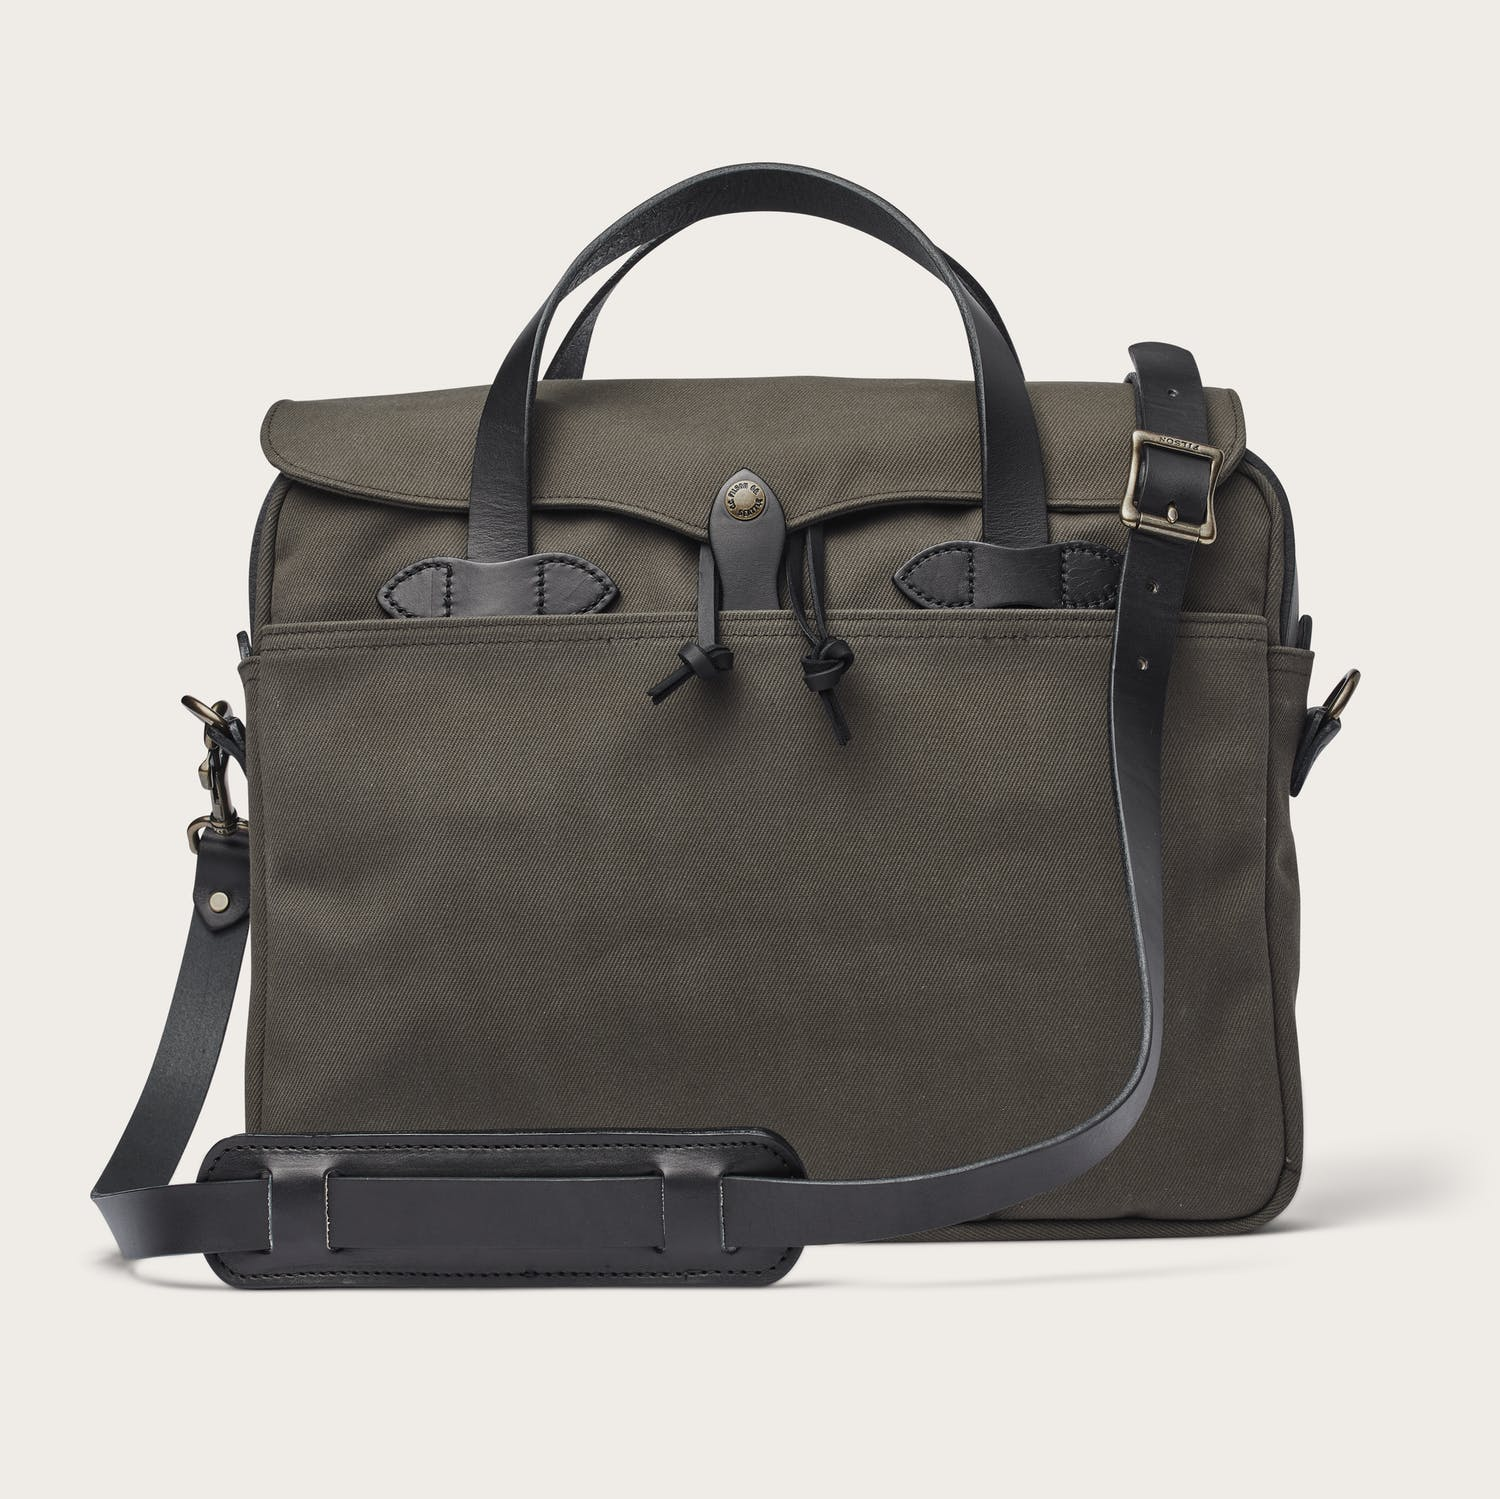 Filson - Original Briefcase - Root - The Populess Company